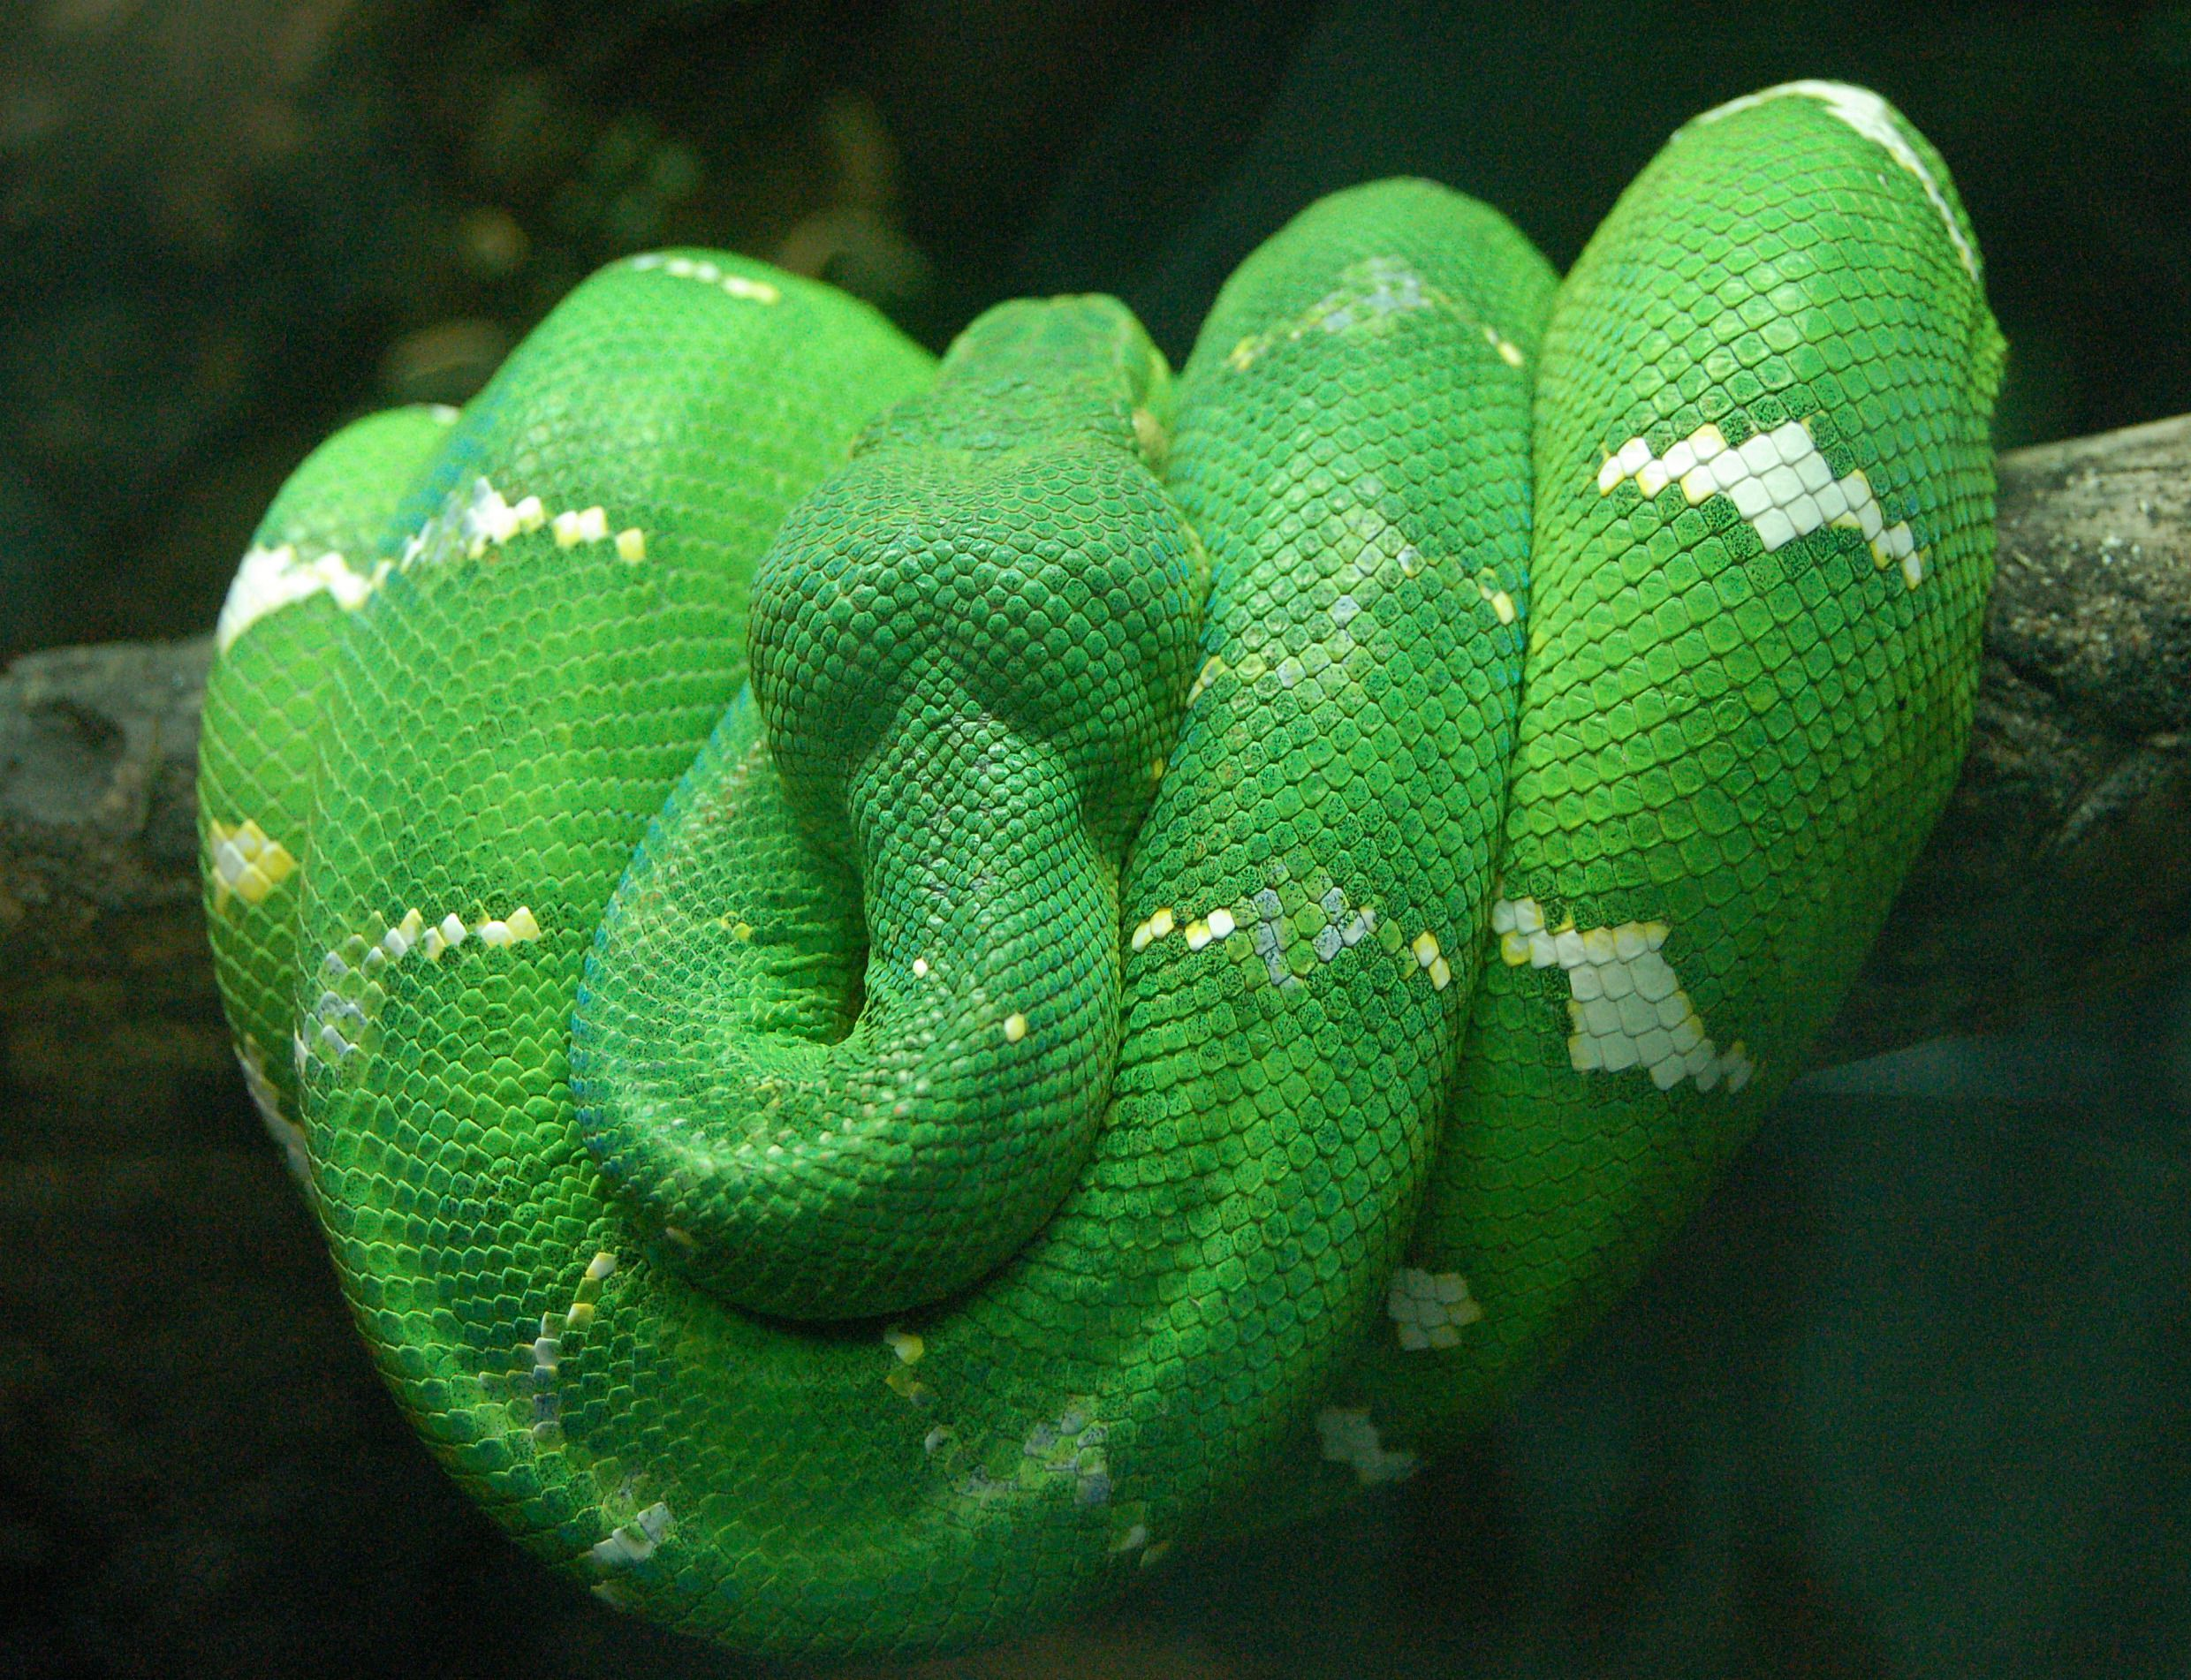 The emerald tree boa, a non-venomous snake which lives in the ...